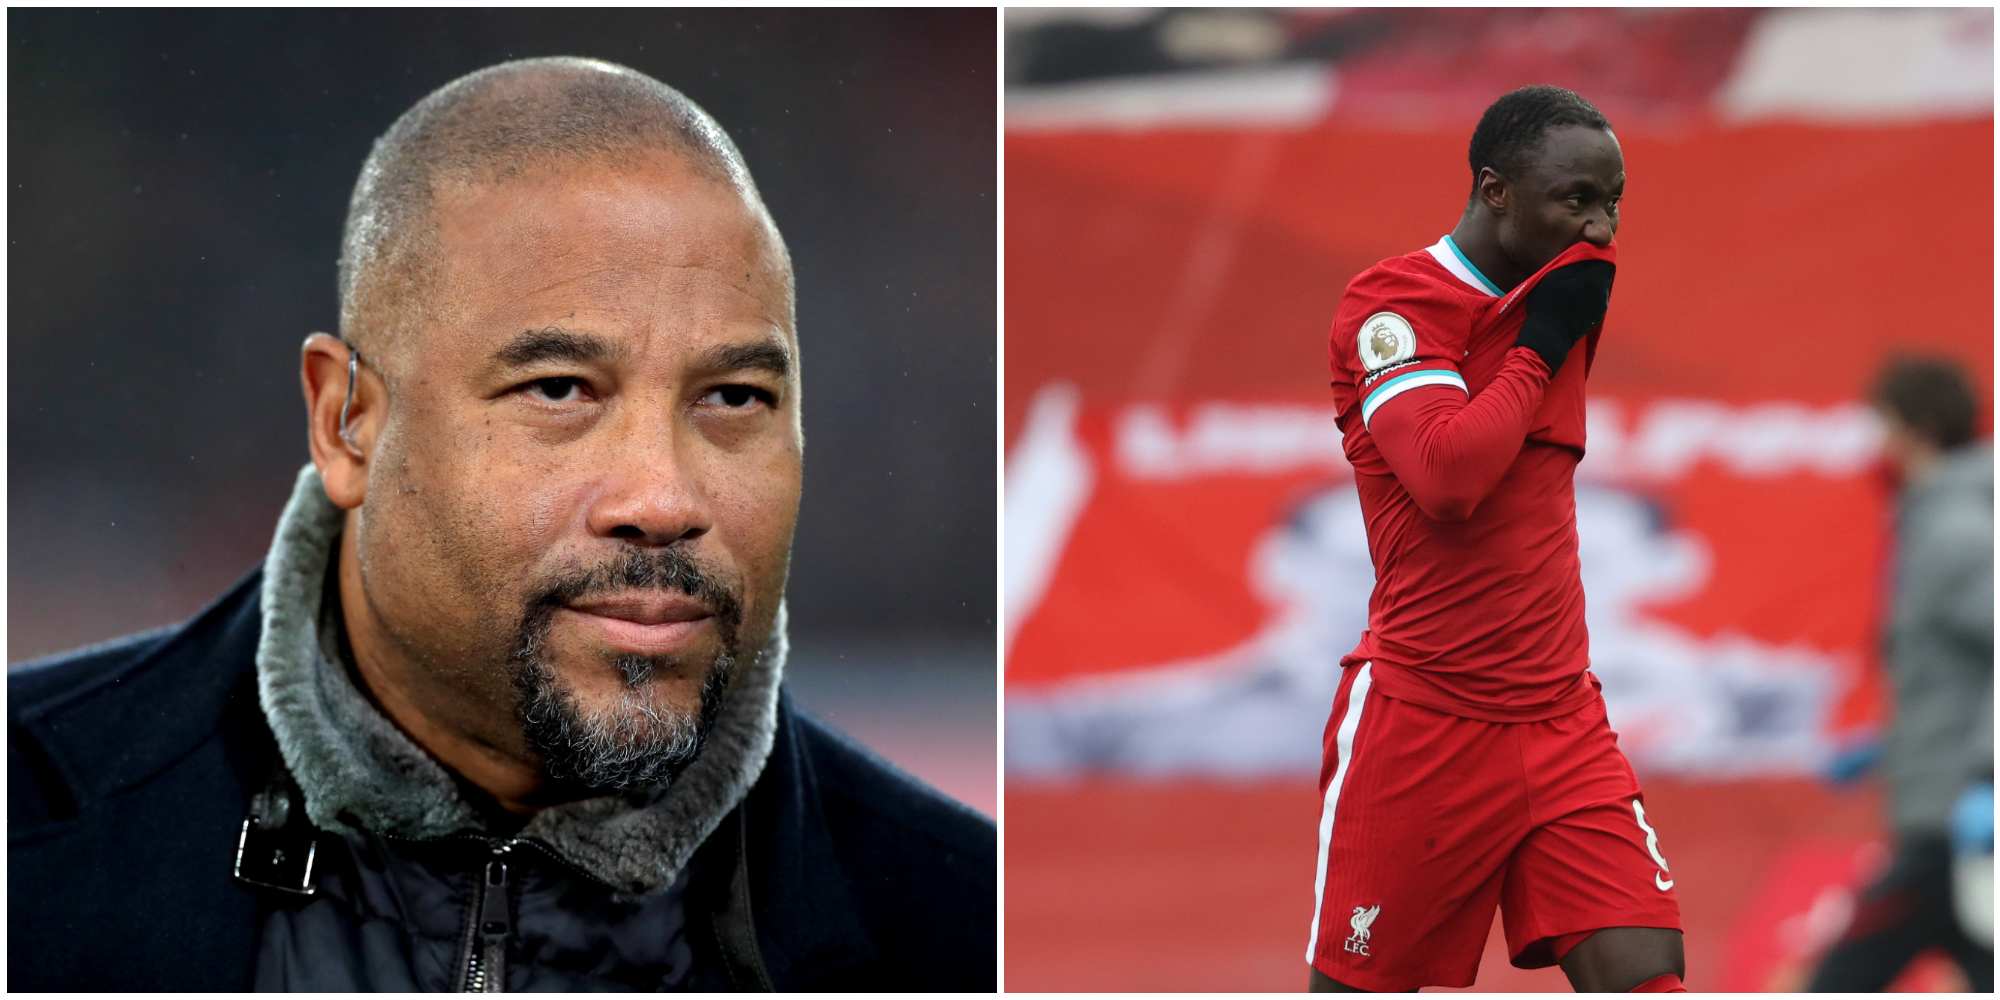 'He's been inconsistent' – Barnes suggests Reds have a decision to make over Liverpool star's future